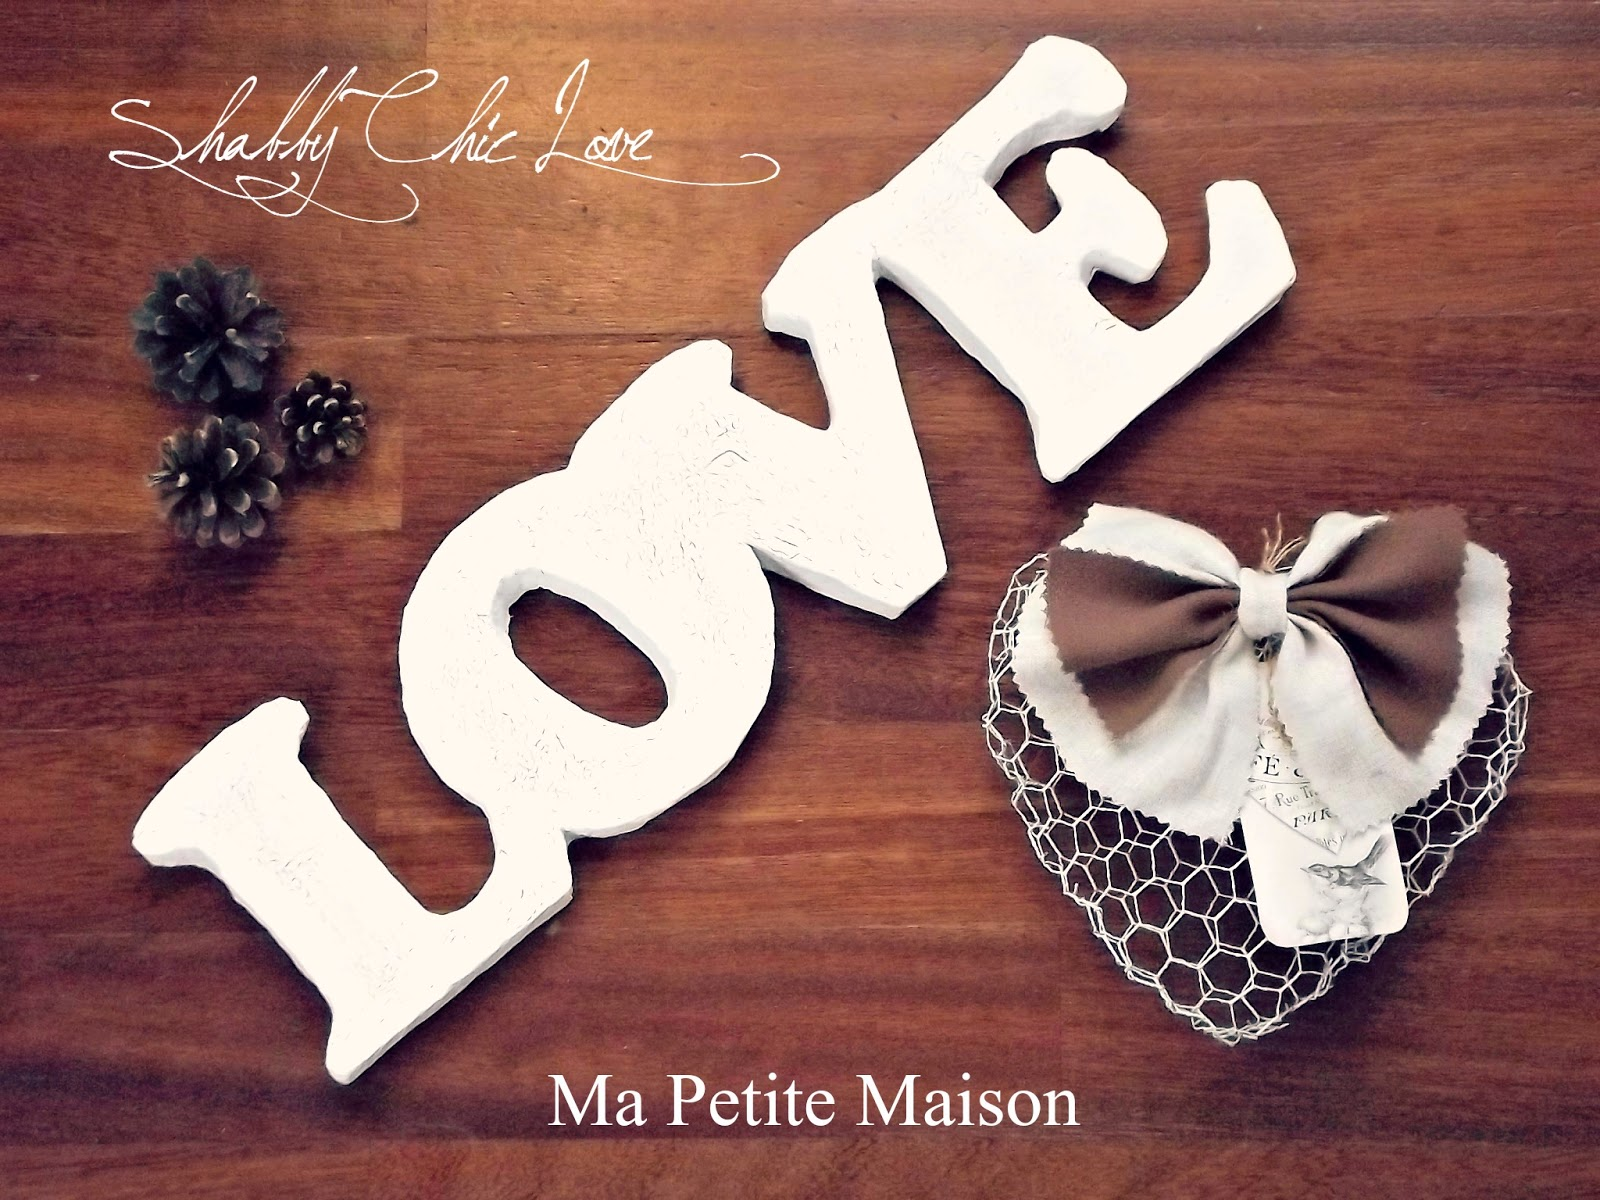 Handmade Valentine Shabby Chic Love Letters Ma Petite Maison